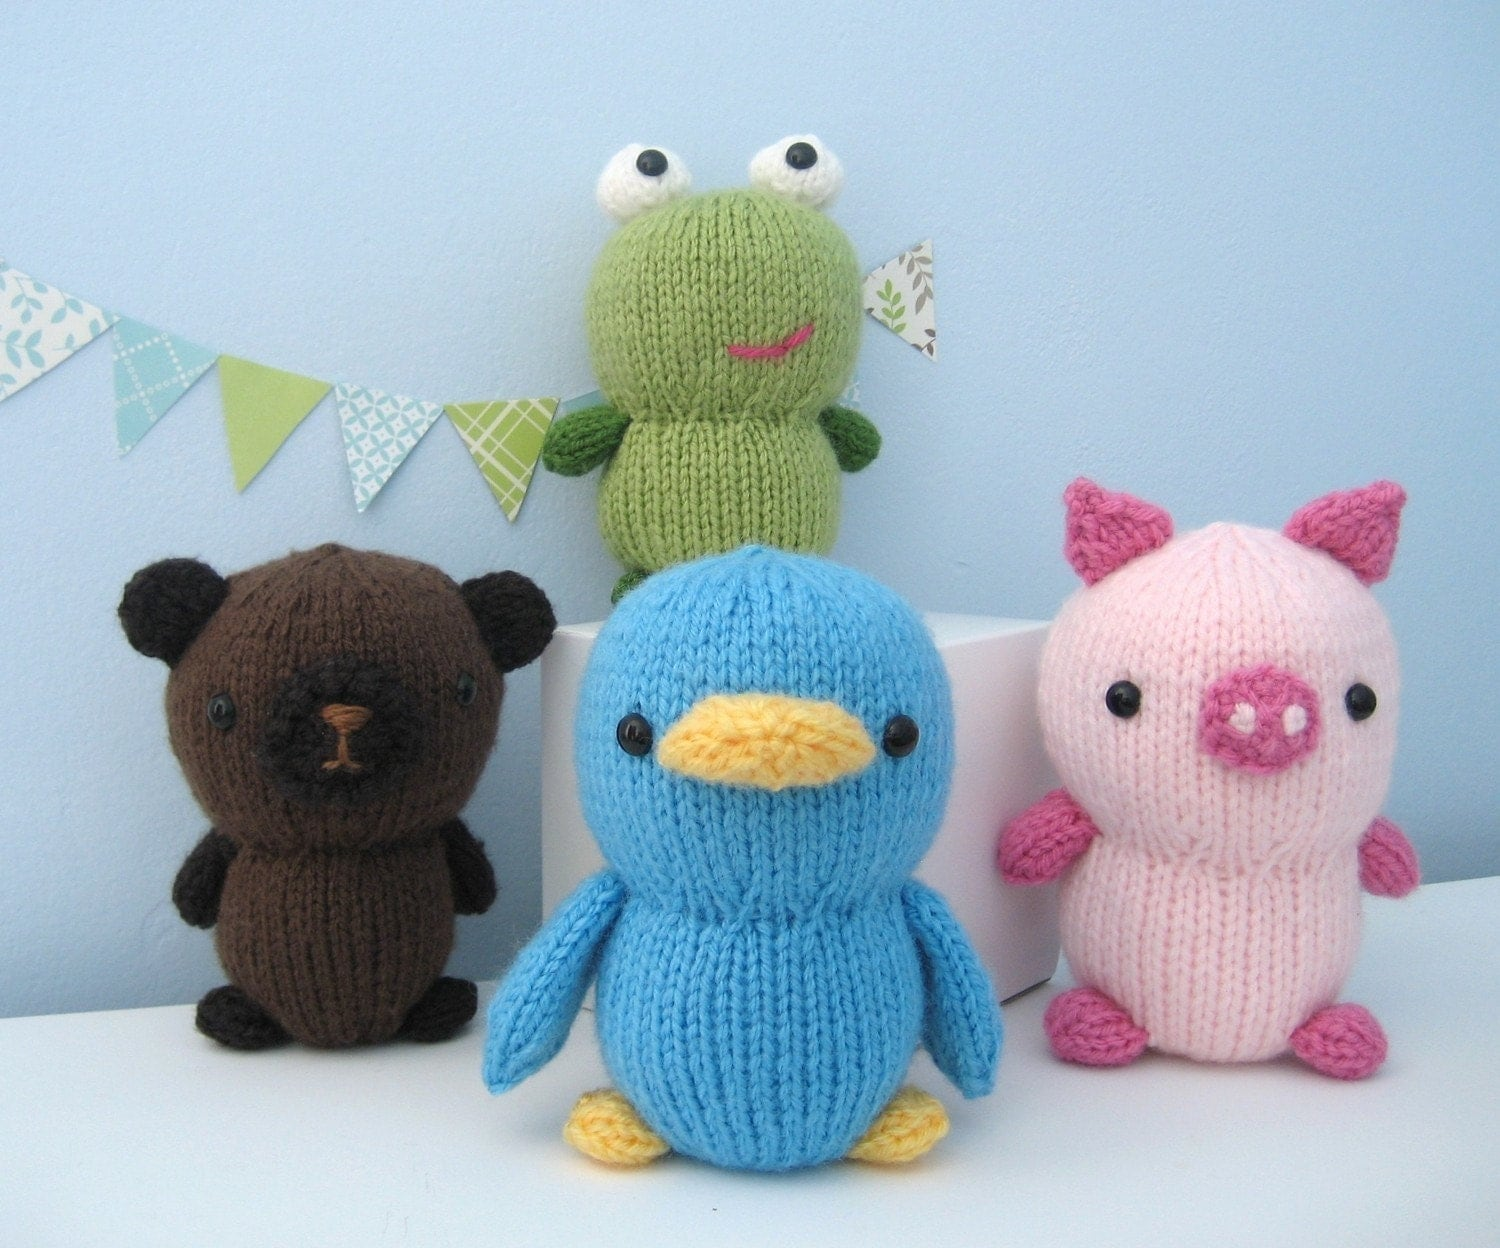 Animal Knitting Patterns Free : Amigurumi Knit Animal Friends Pattern Set Digital Download